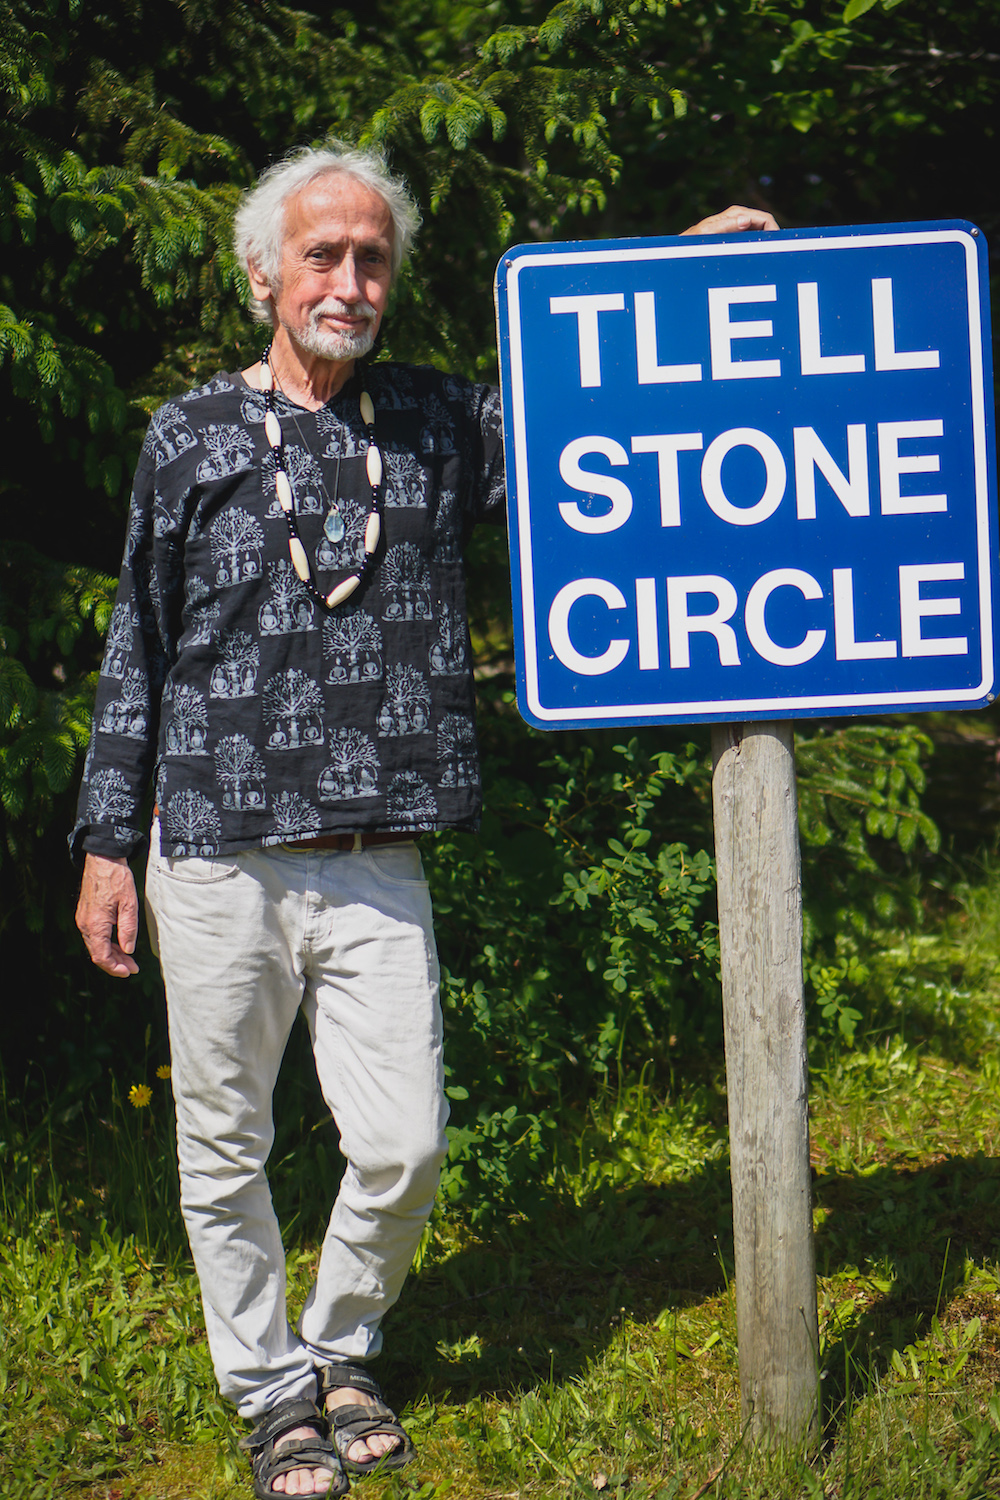 Dutes Dutheil, the creator of the Tlell Stone Circle. Photo by Patrick Shannon / www.innonative.ca